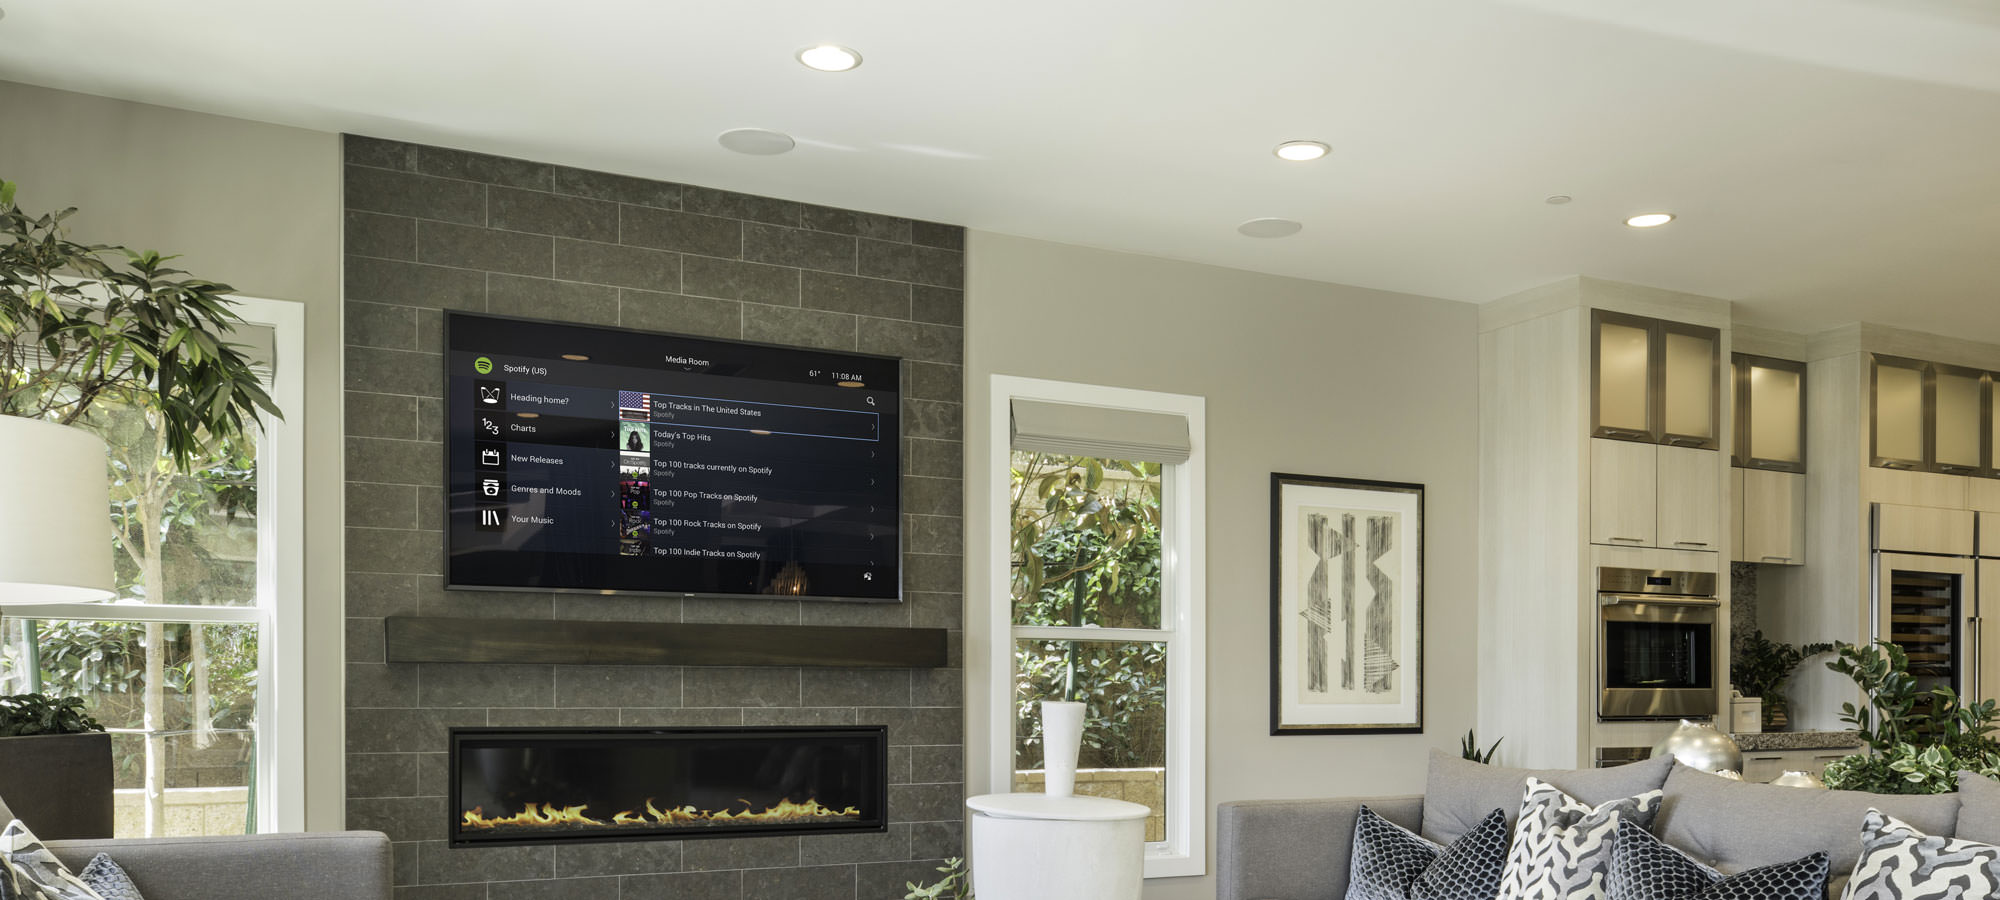 3 Features of Professionally-Installed Whole-Home Audio System